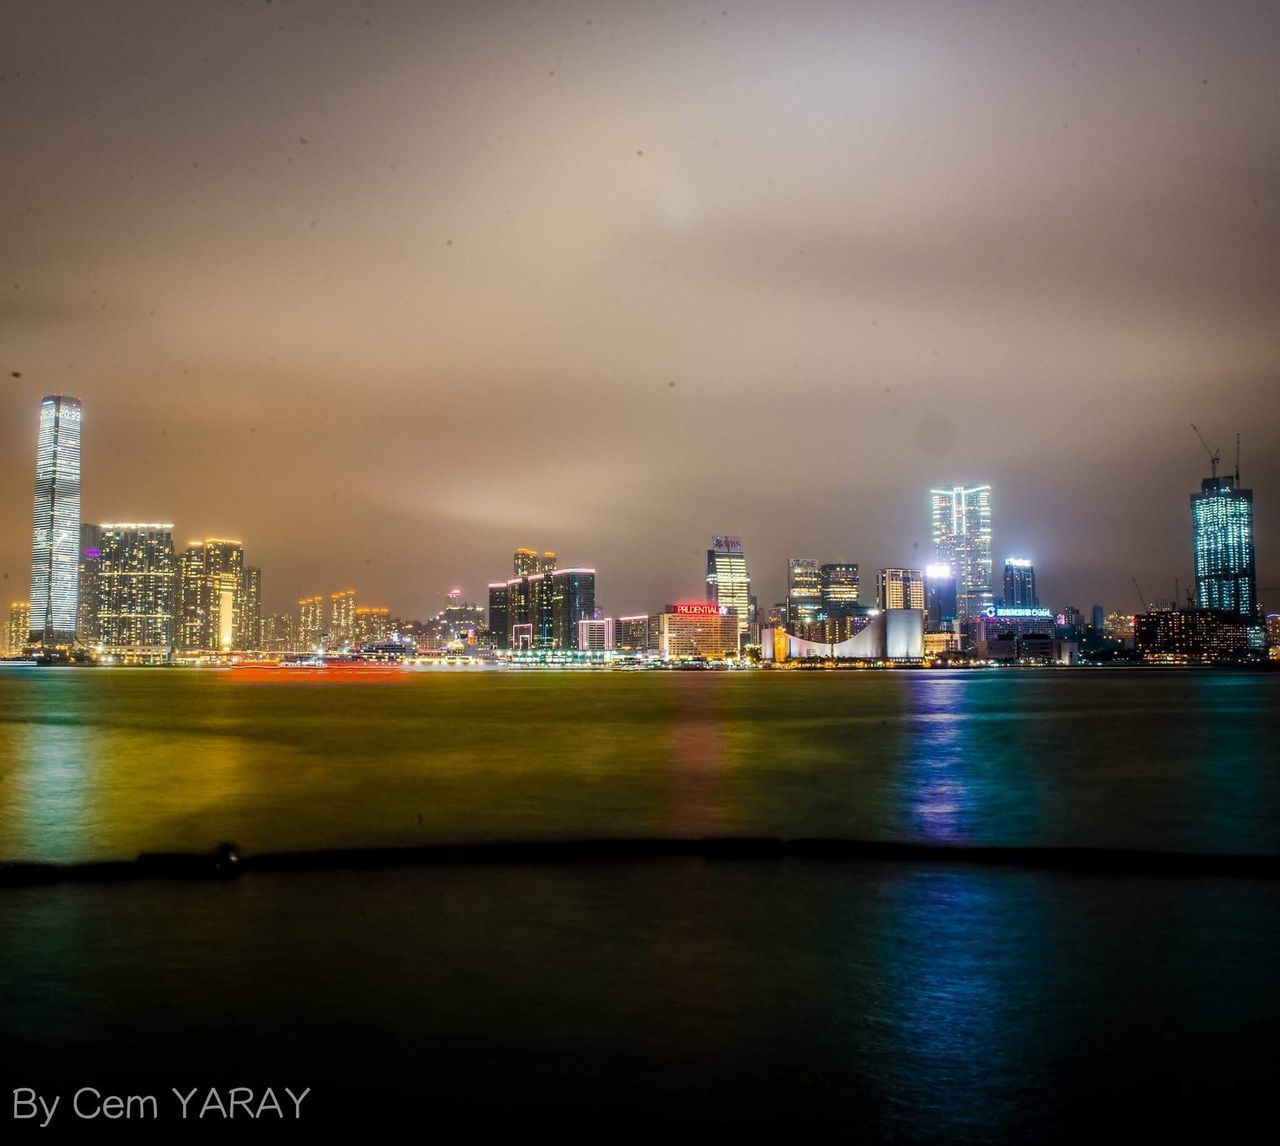 architecture, building exterior, skyscraper, city, built structure, cityscape, urban skyline, waterfront, illuminated, travel destinations, river, water, modern, sky, skyline, tower, no people, downtown district, night, city life, financial district, tall, growth, outdoors, nature